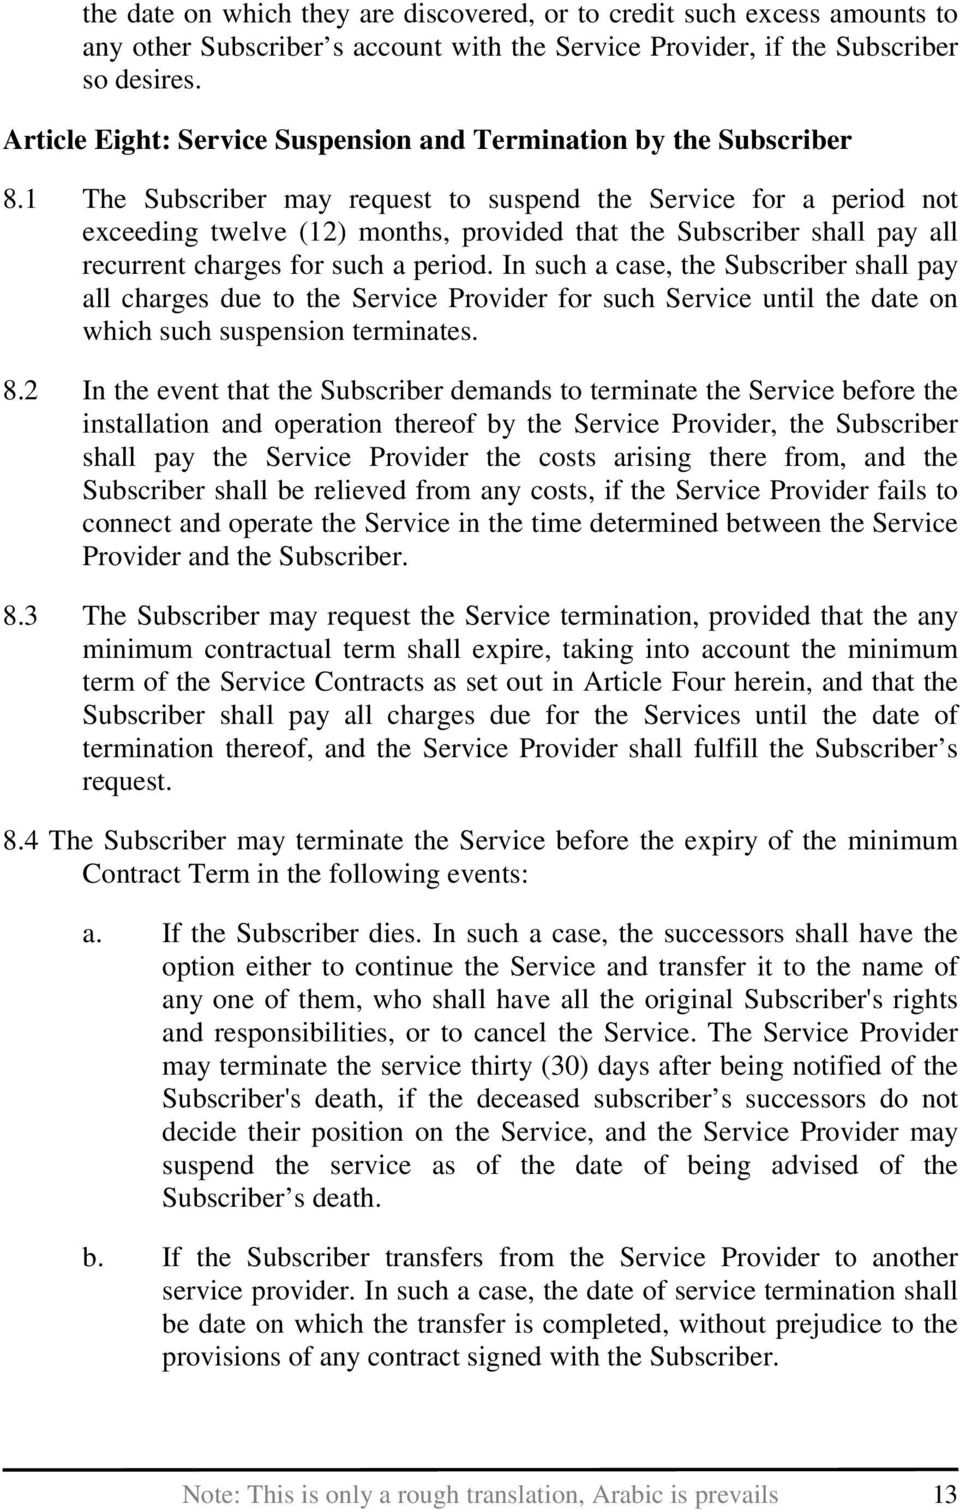 1 The Subscriber may request to suspend the Service for a period not exceeding twelve (12) months, provided that the Subscriber shall pay all recurrent charges for such a period.